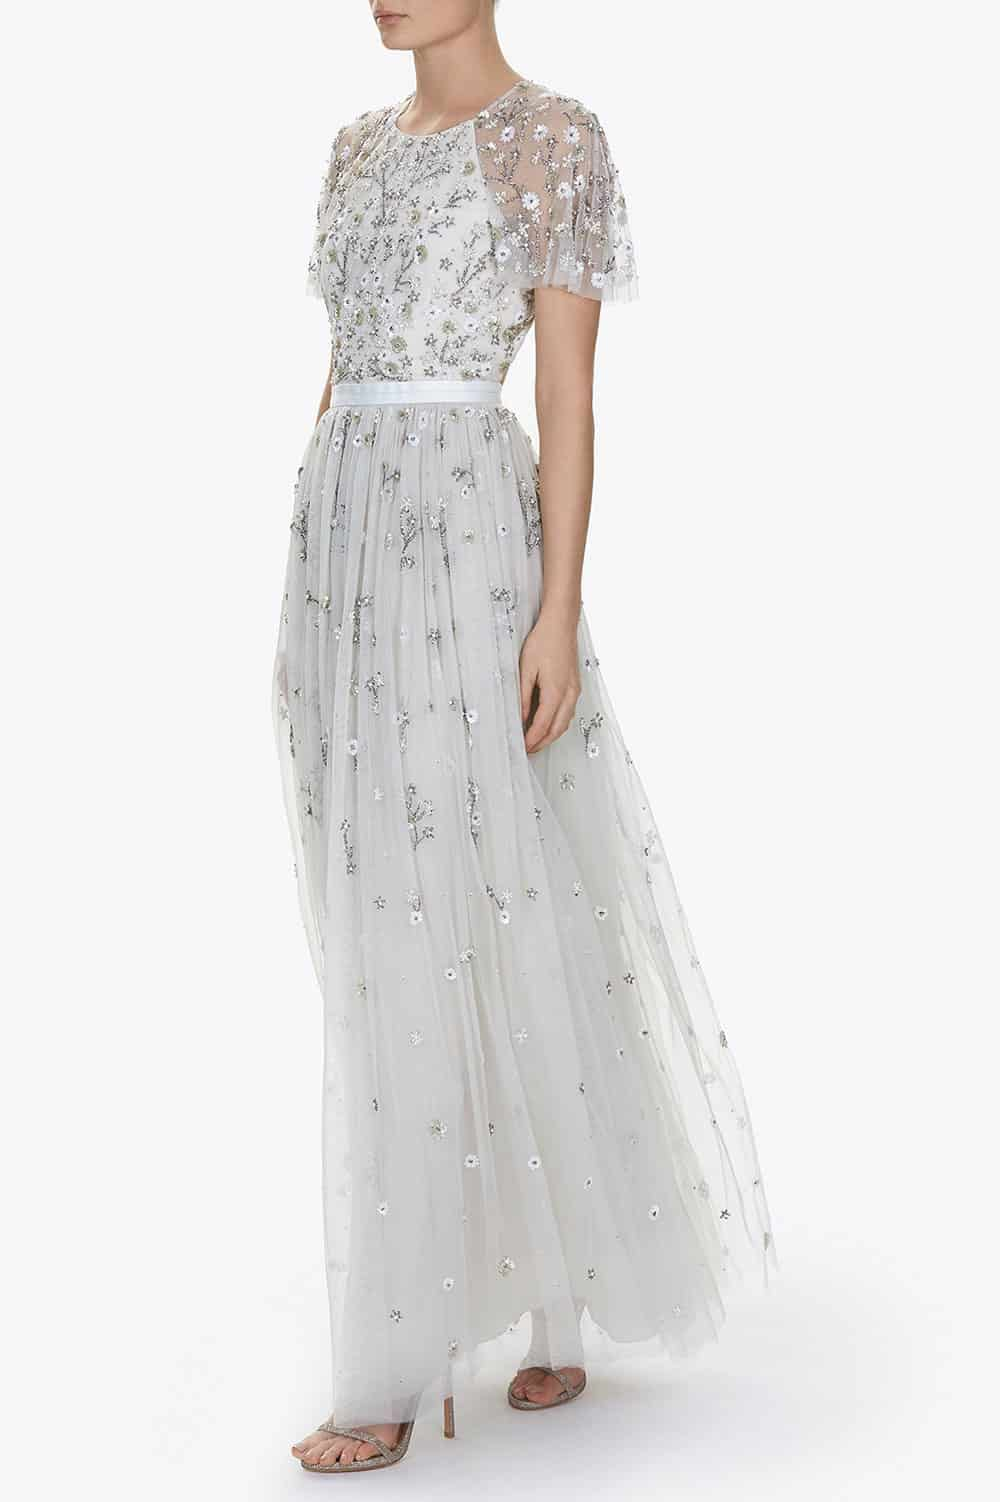 Silver sheer embellished wedding dress from Needle & Thread.